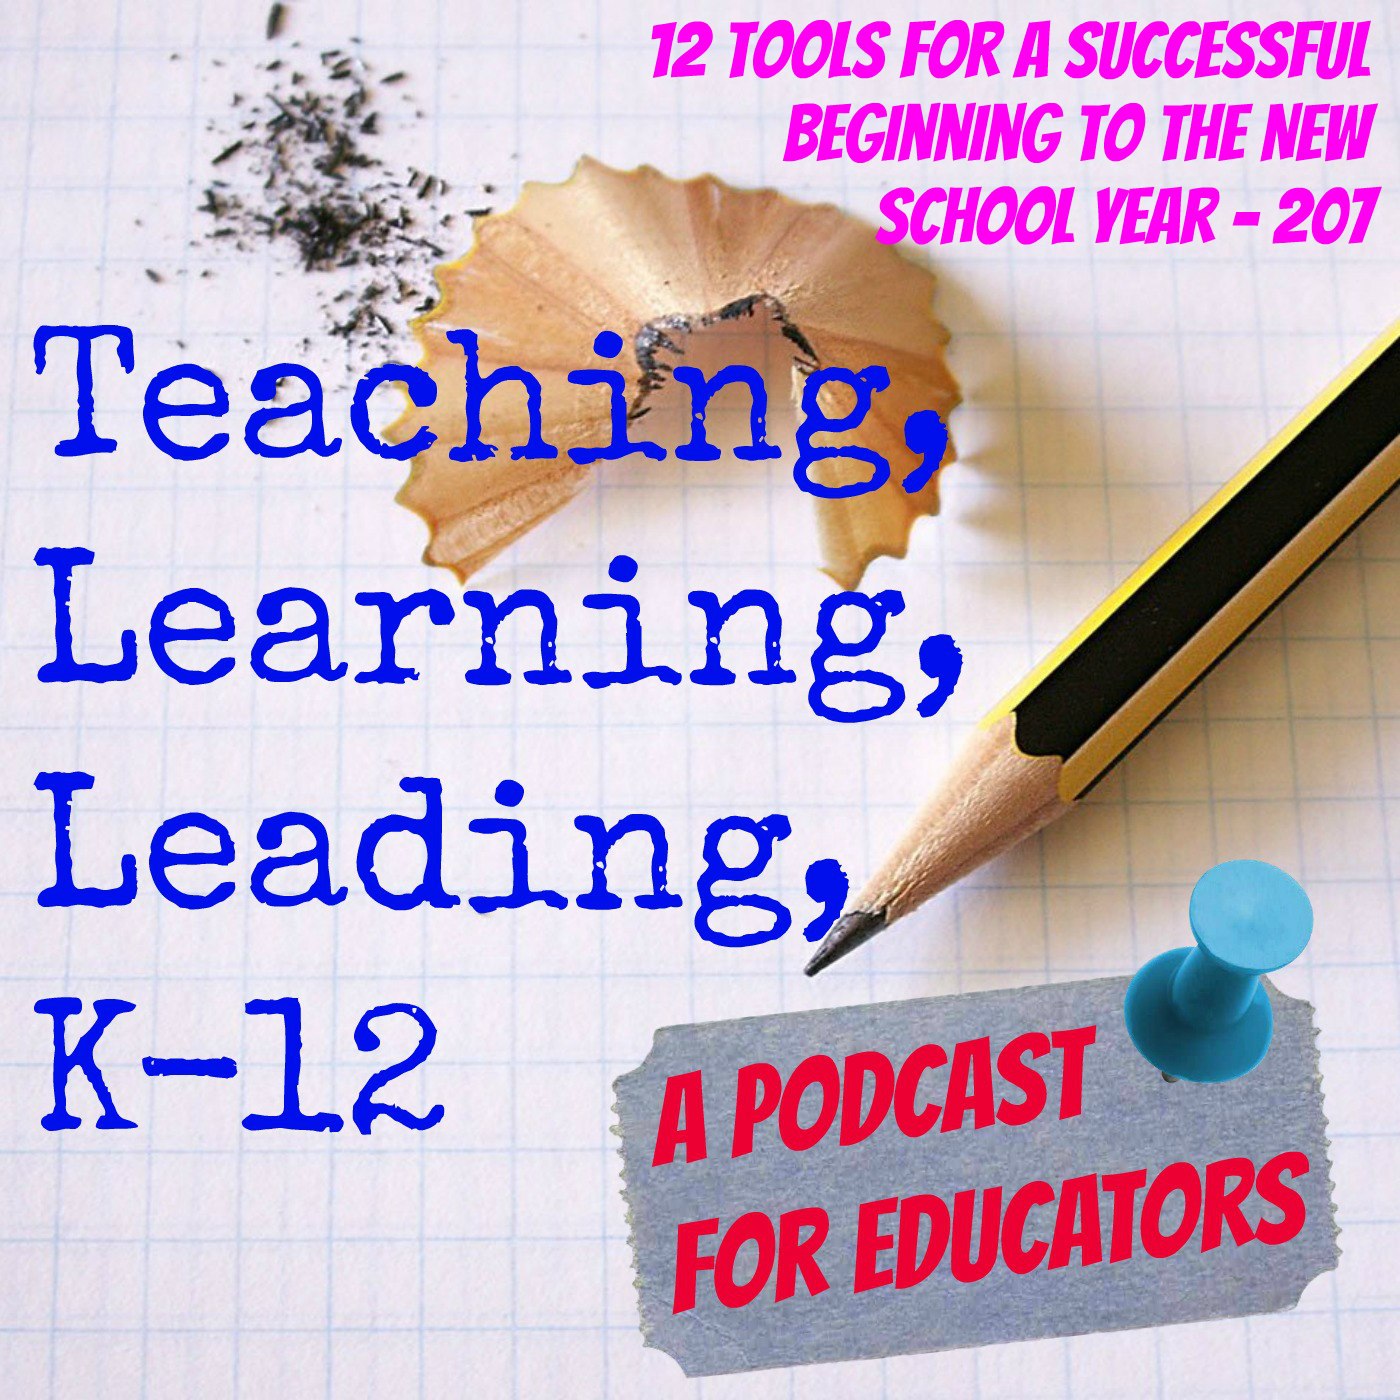 12 Tools for a Successful Start to the New School Year - 207